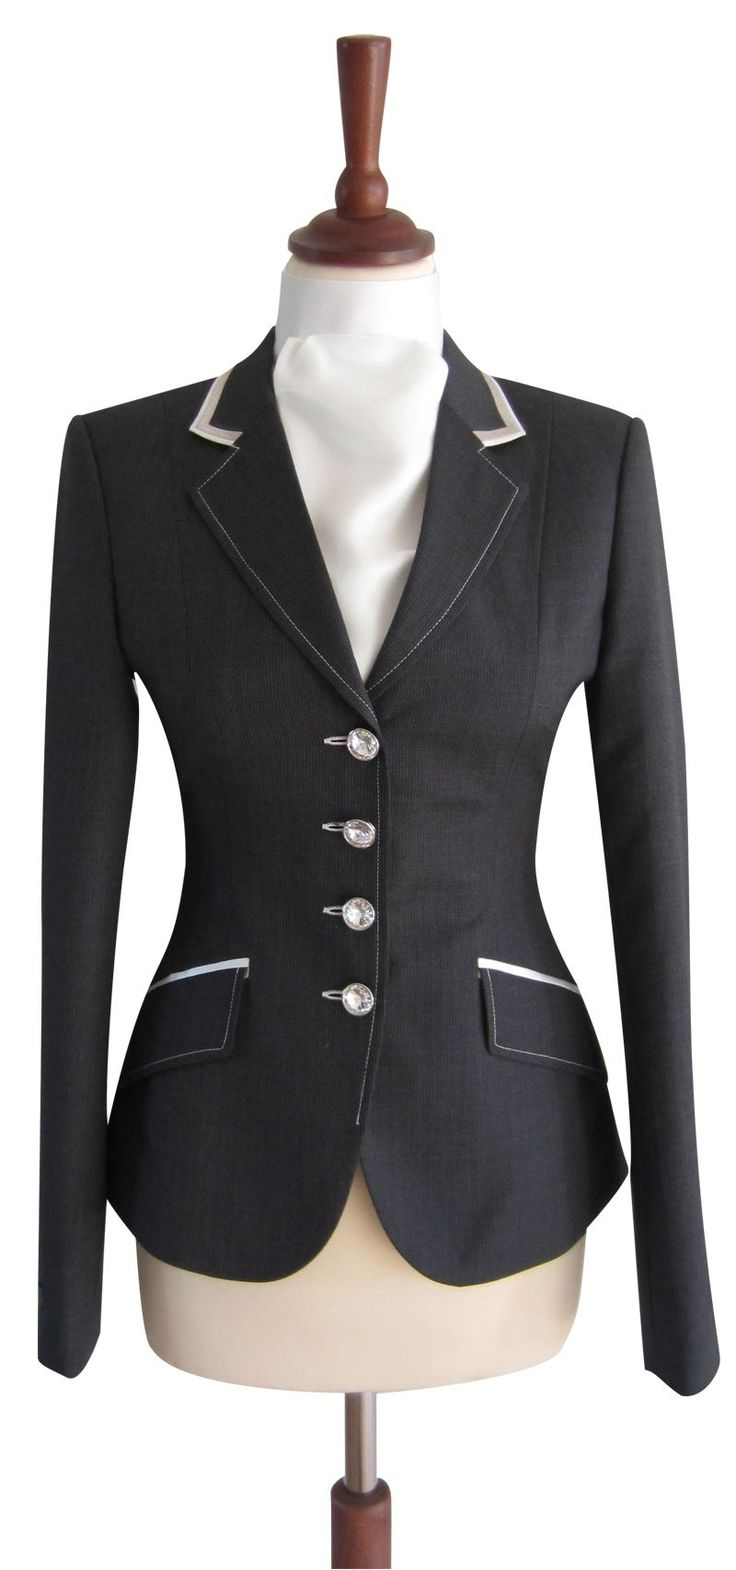 Juuls Jackets -  Show Jacket / Riding Jacket for women - Horses